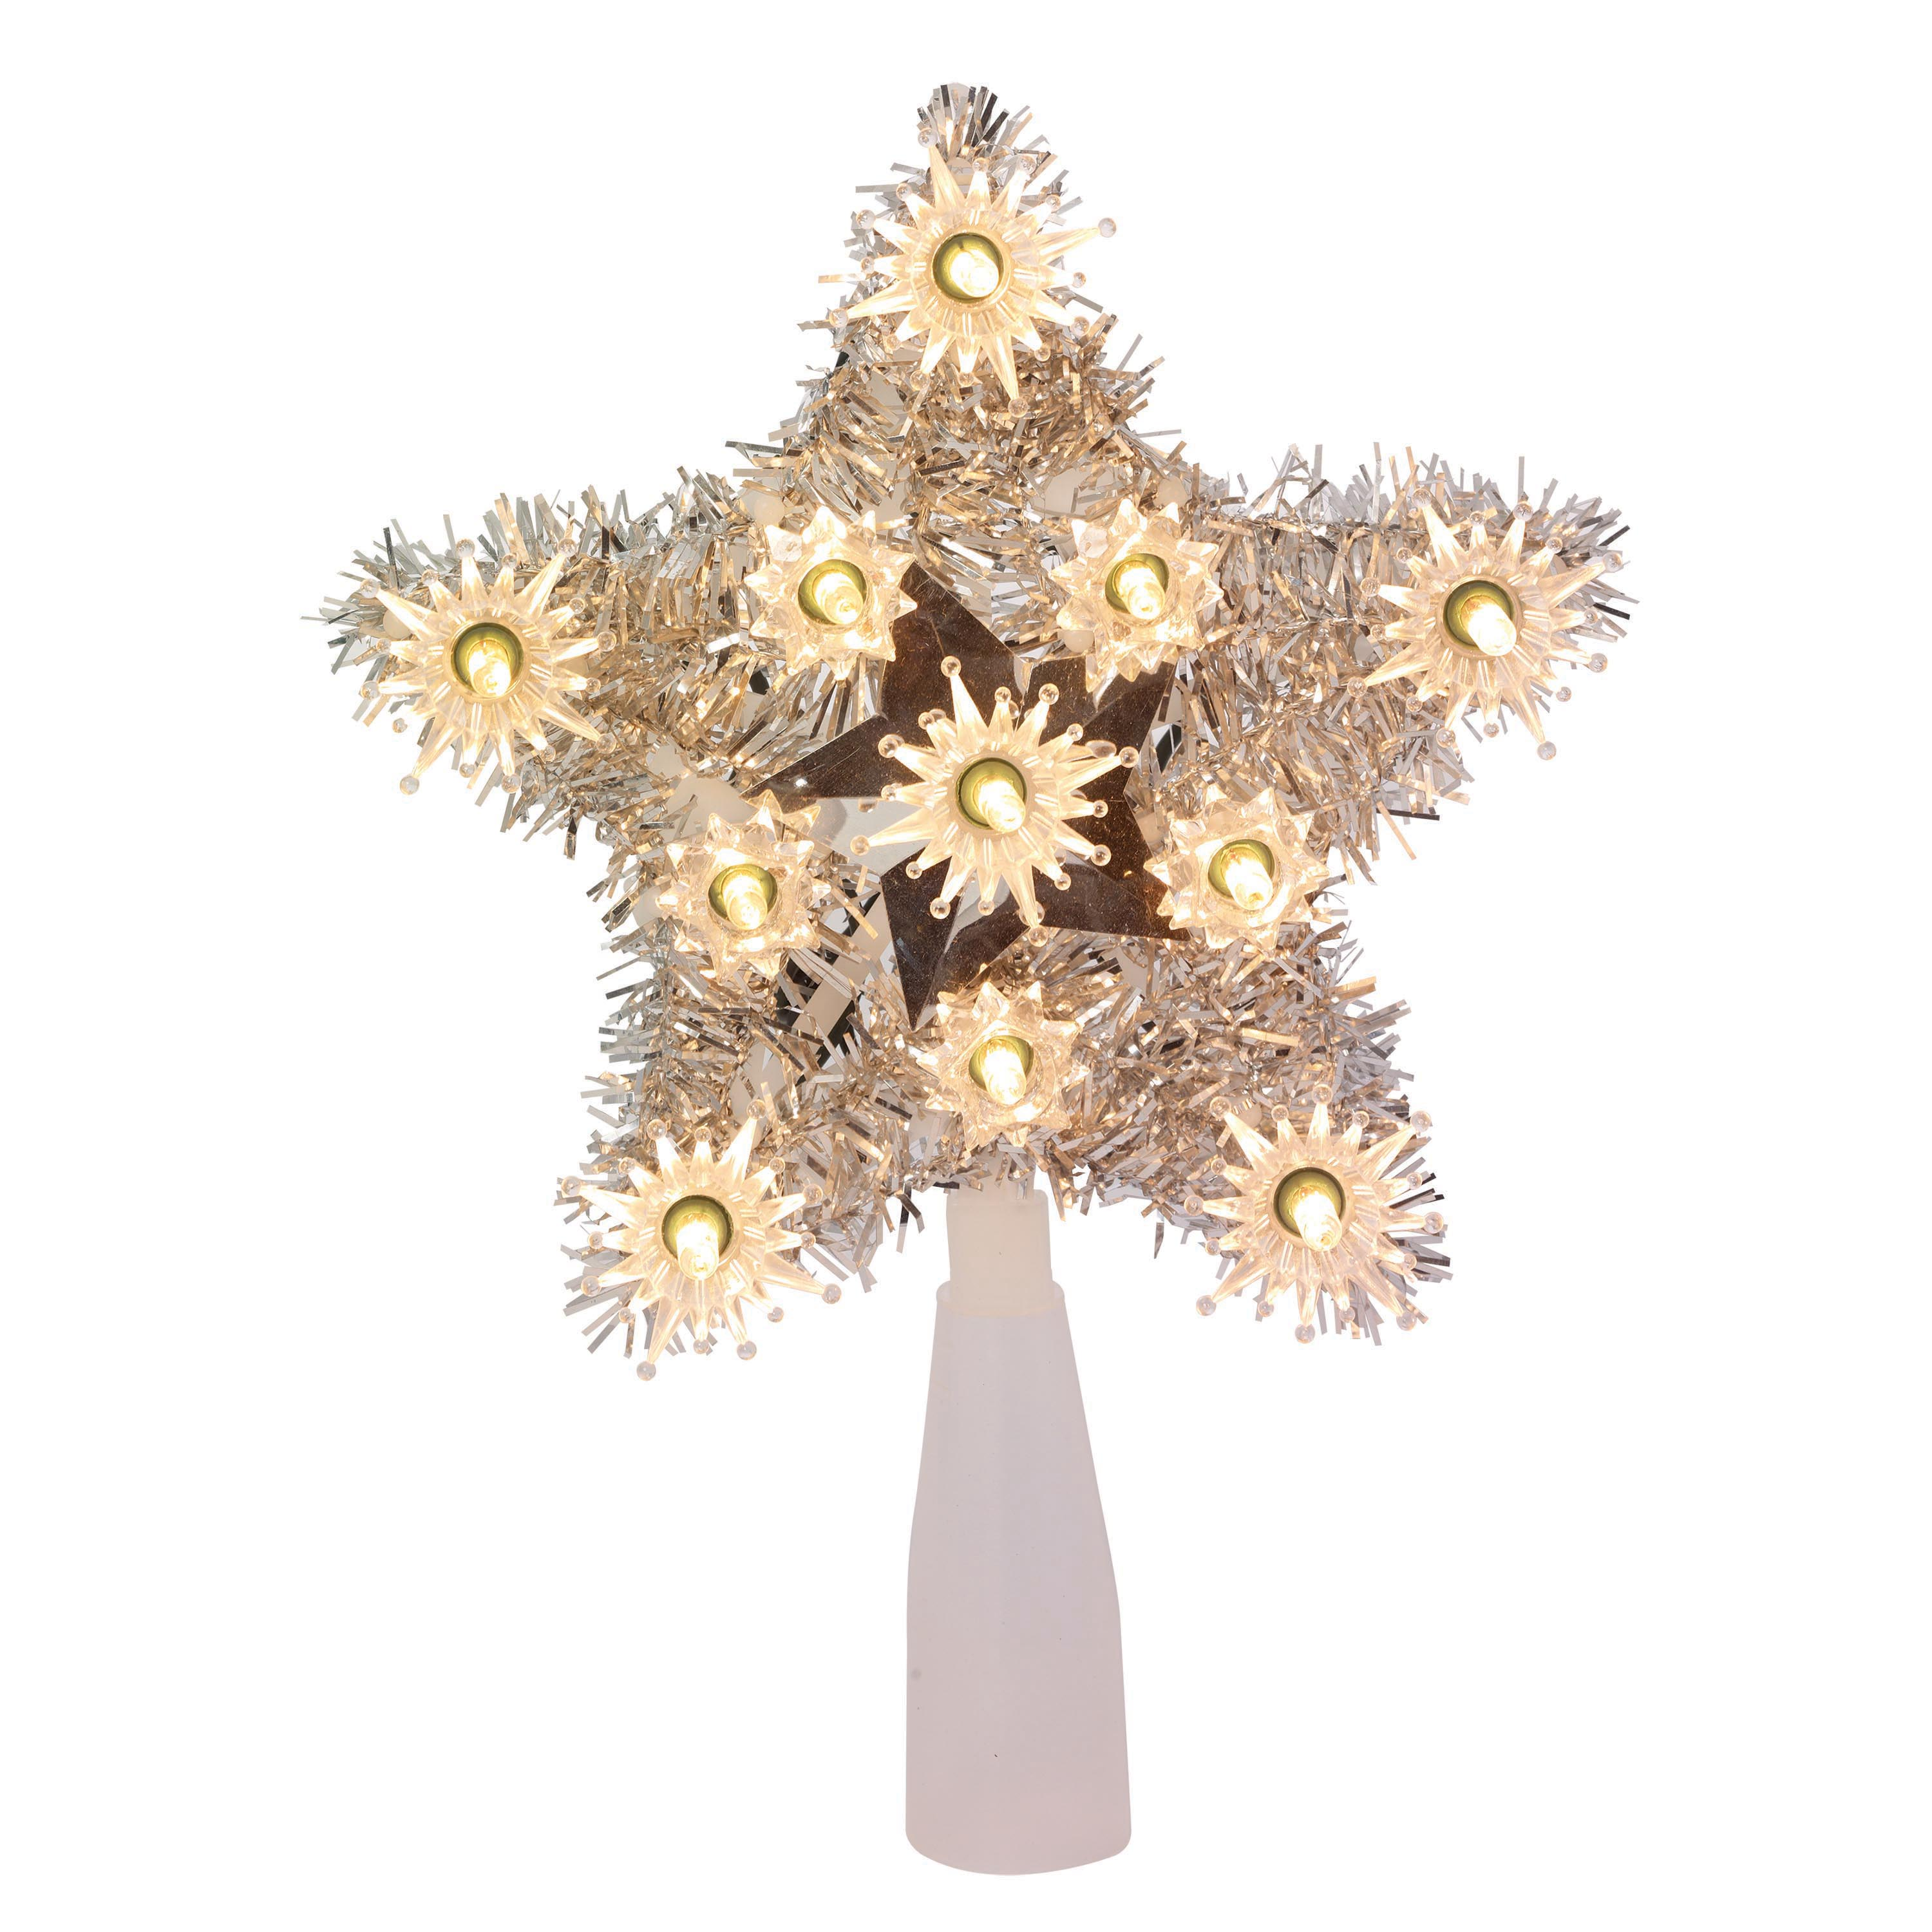 "Holiday Time Christmas Ornaments 6"" 11 UL Silver Tinsel Star Tree Topper with Clear Bulbs"